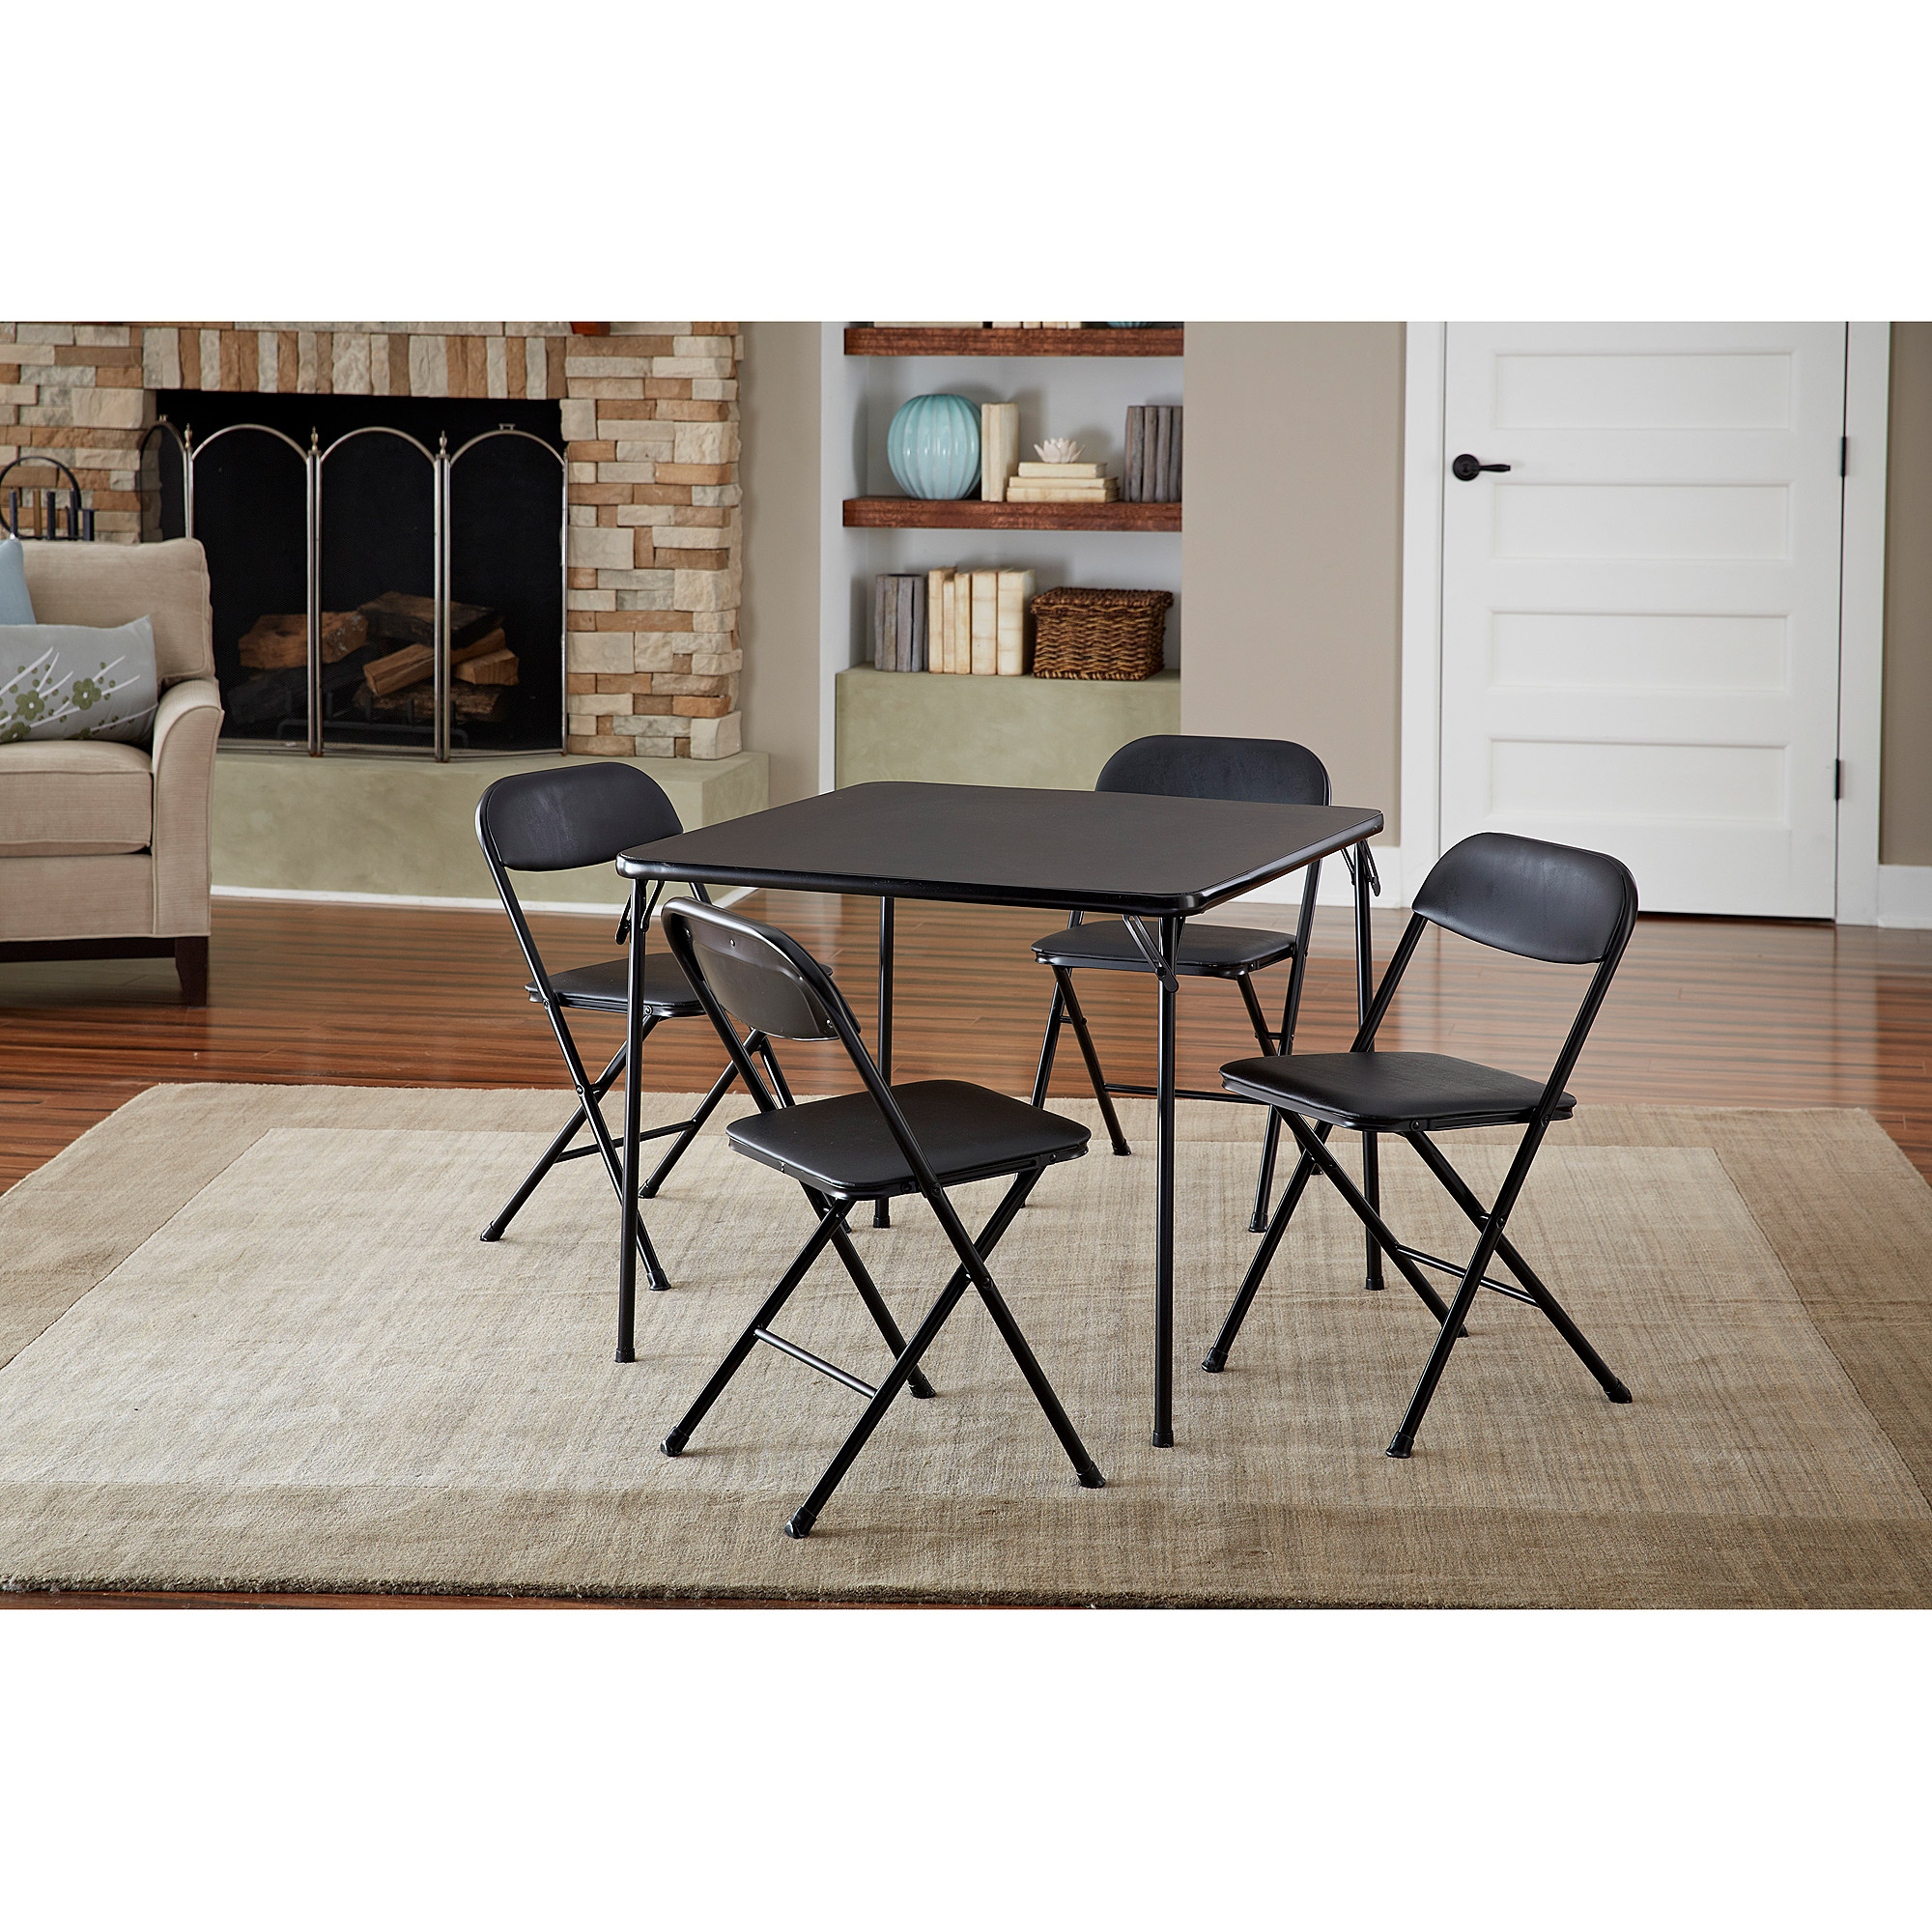 Cosco 5 Piece Card Table Set, Black   Walmart.com